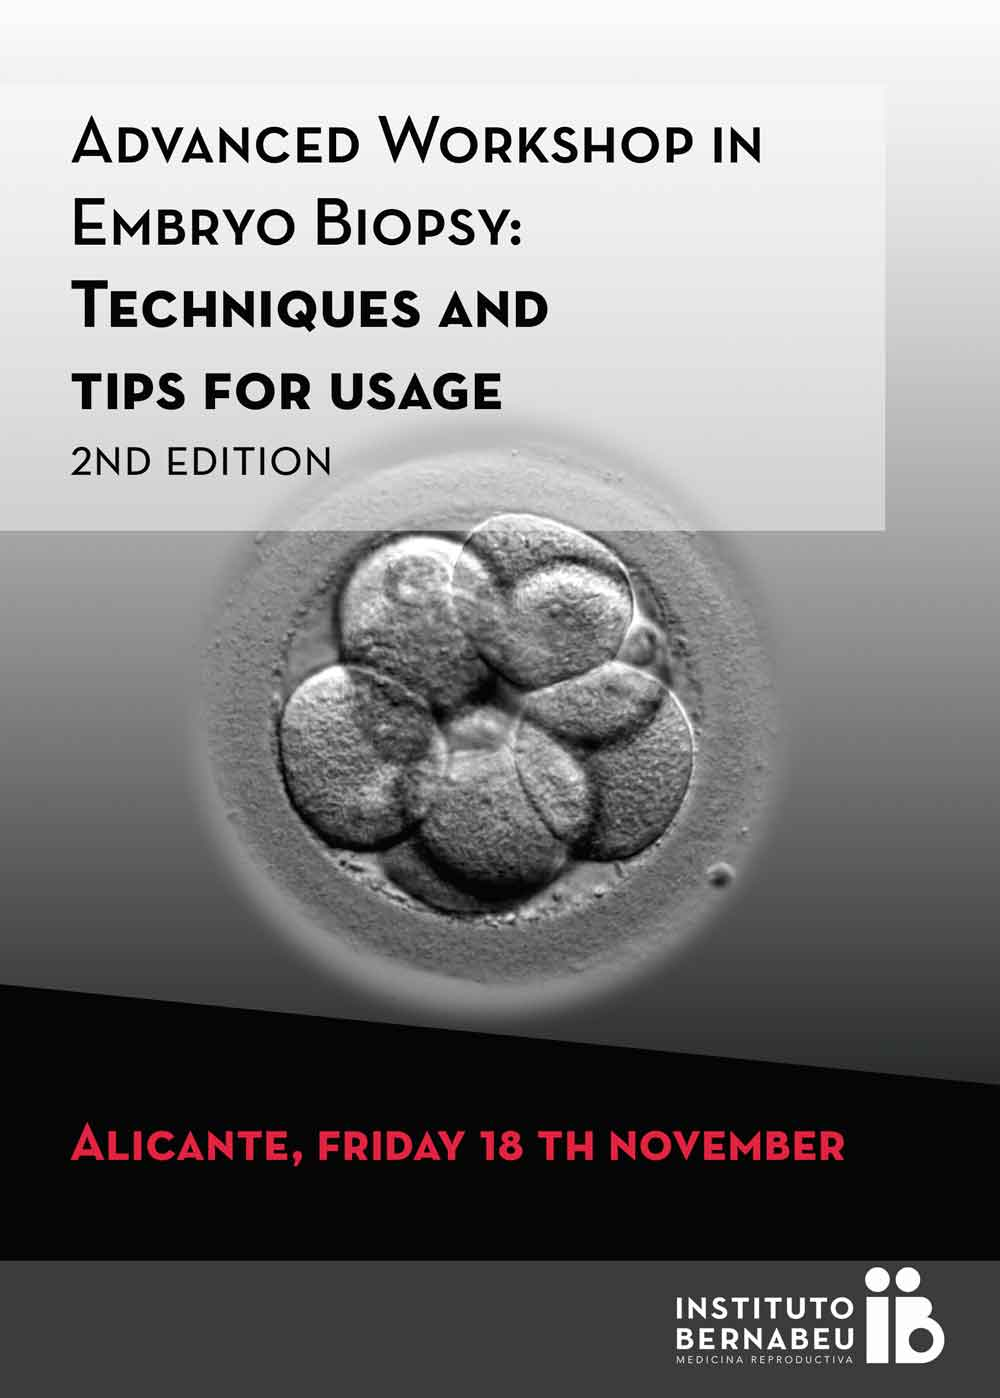 Advanced Workshop in Embryo Biopsy: Techniques and tips for usage (2nd Edition)